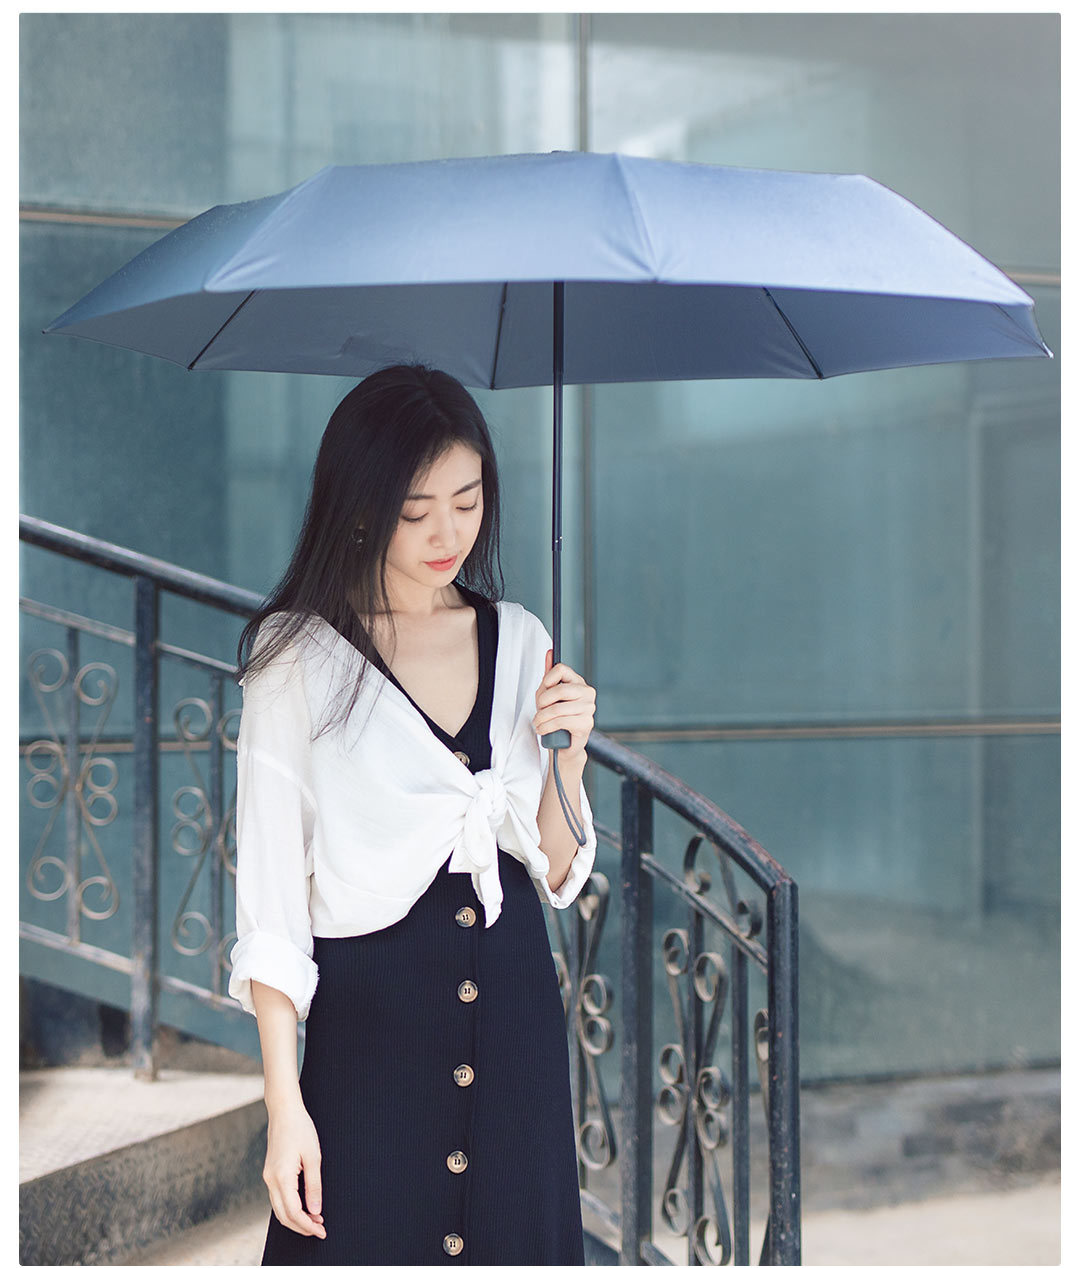 A new umbrella from Xiaomi and 90Fun